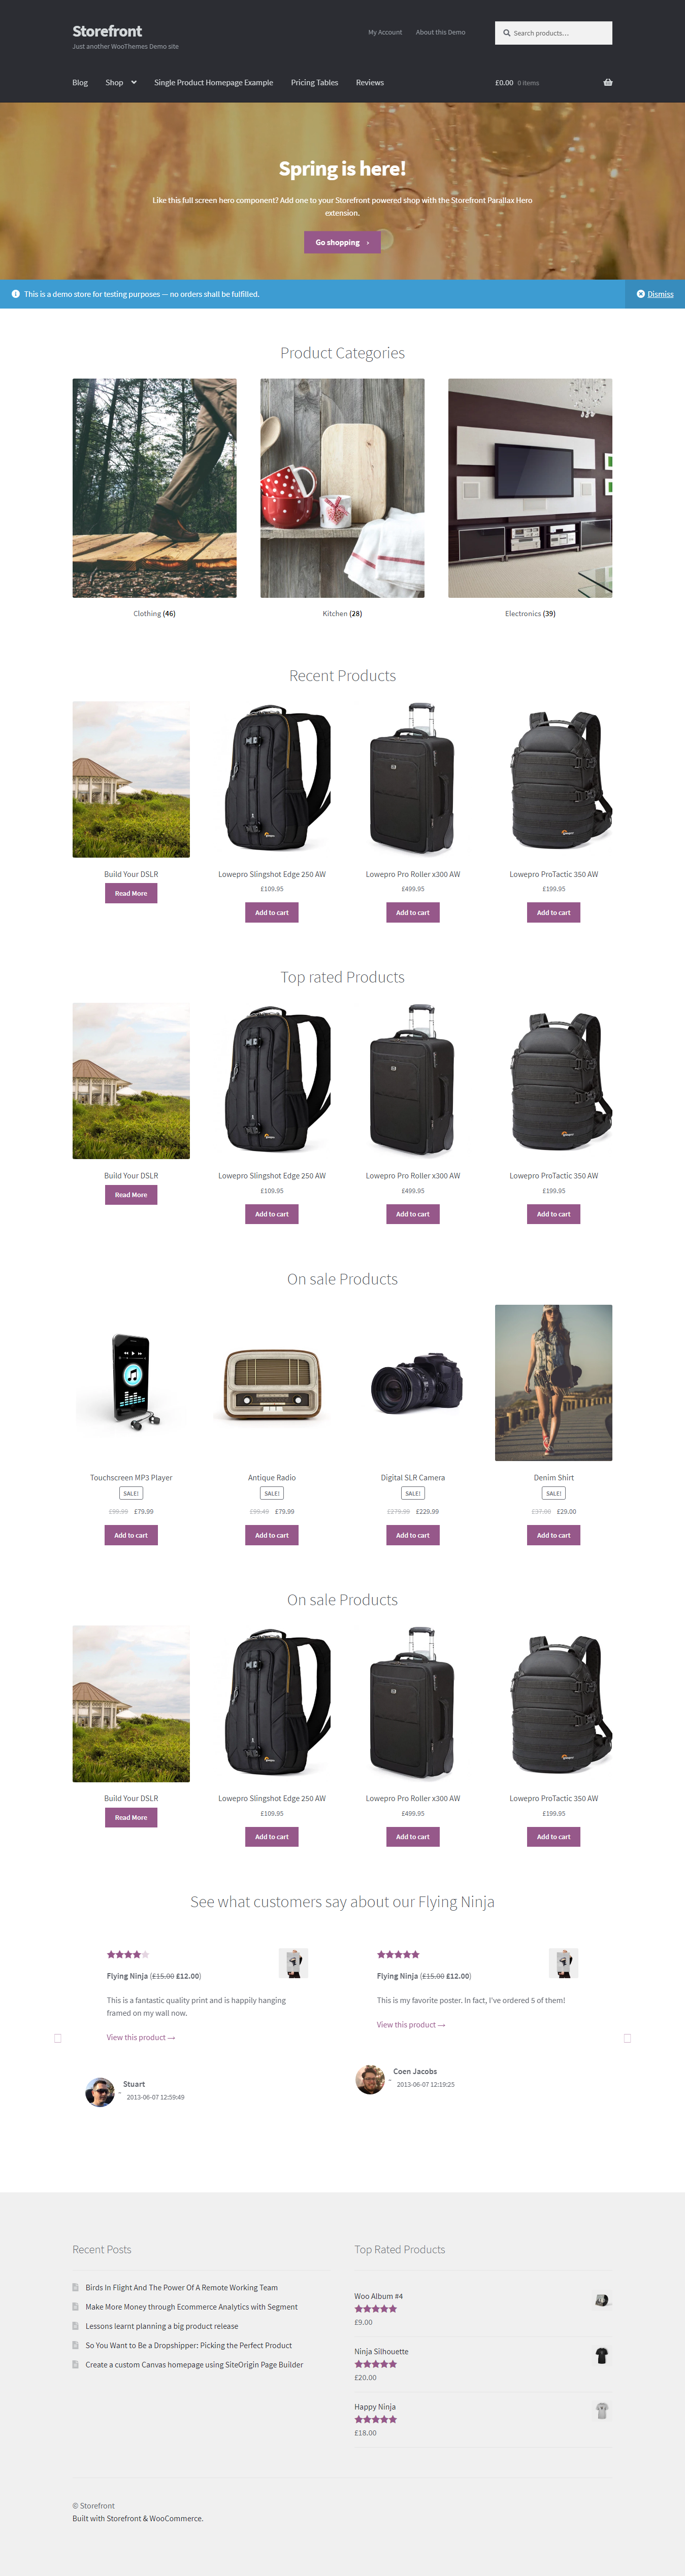 StoreFront - Best Free Retail Shop WordPress Theme